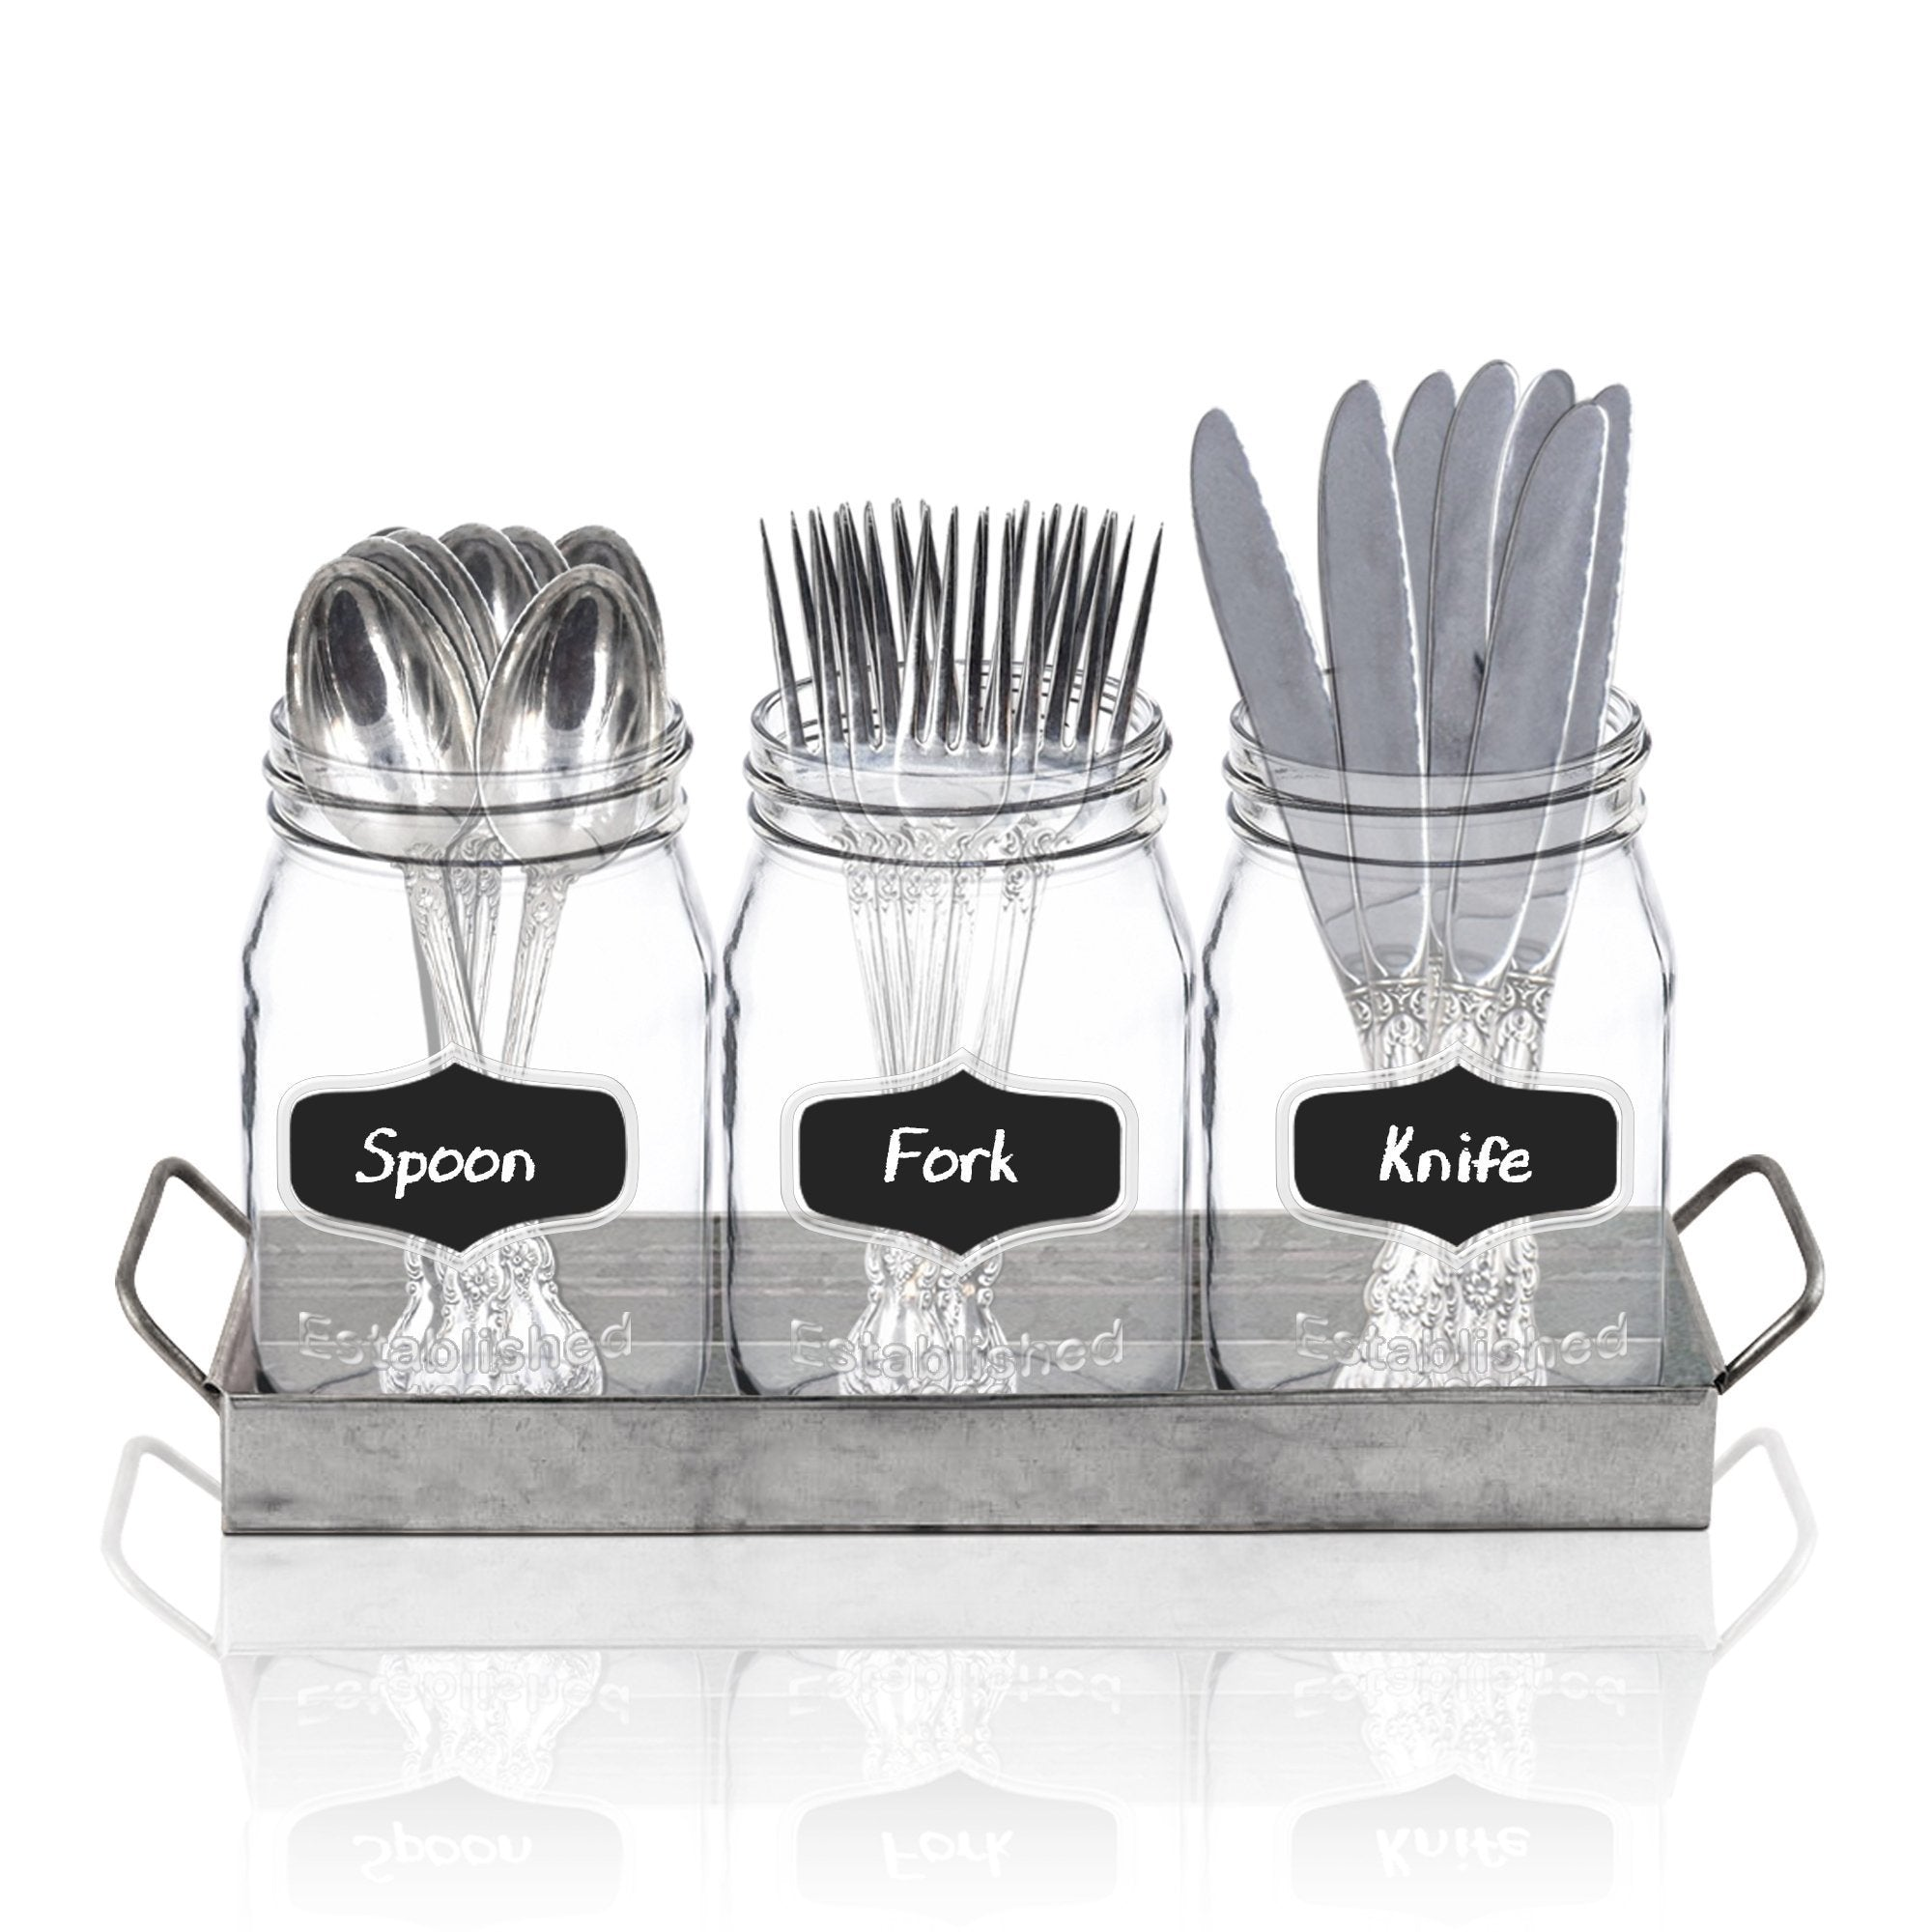 Shop here 3 glass mason jars with black chalk label 17 ounces clear chalkboard mugs on galvanized caddy with handle home and party drinkware set utensil organizer vintage rustic decor set